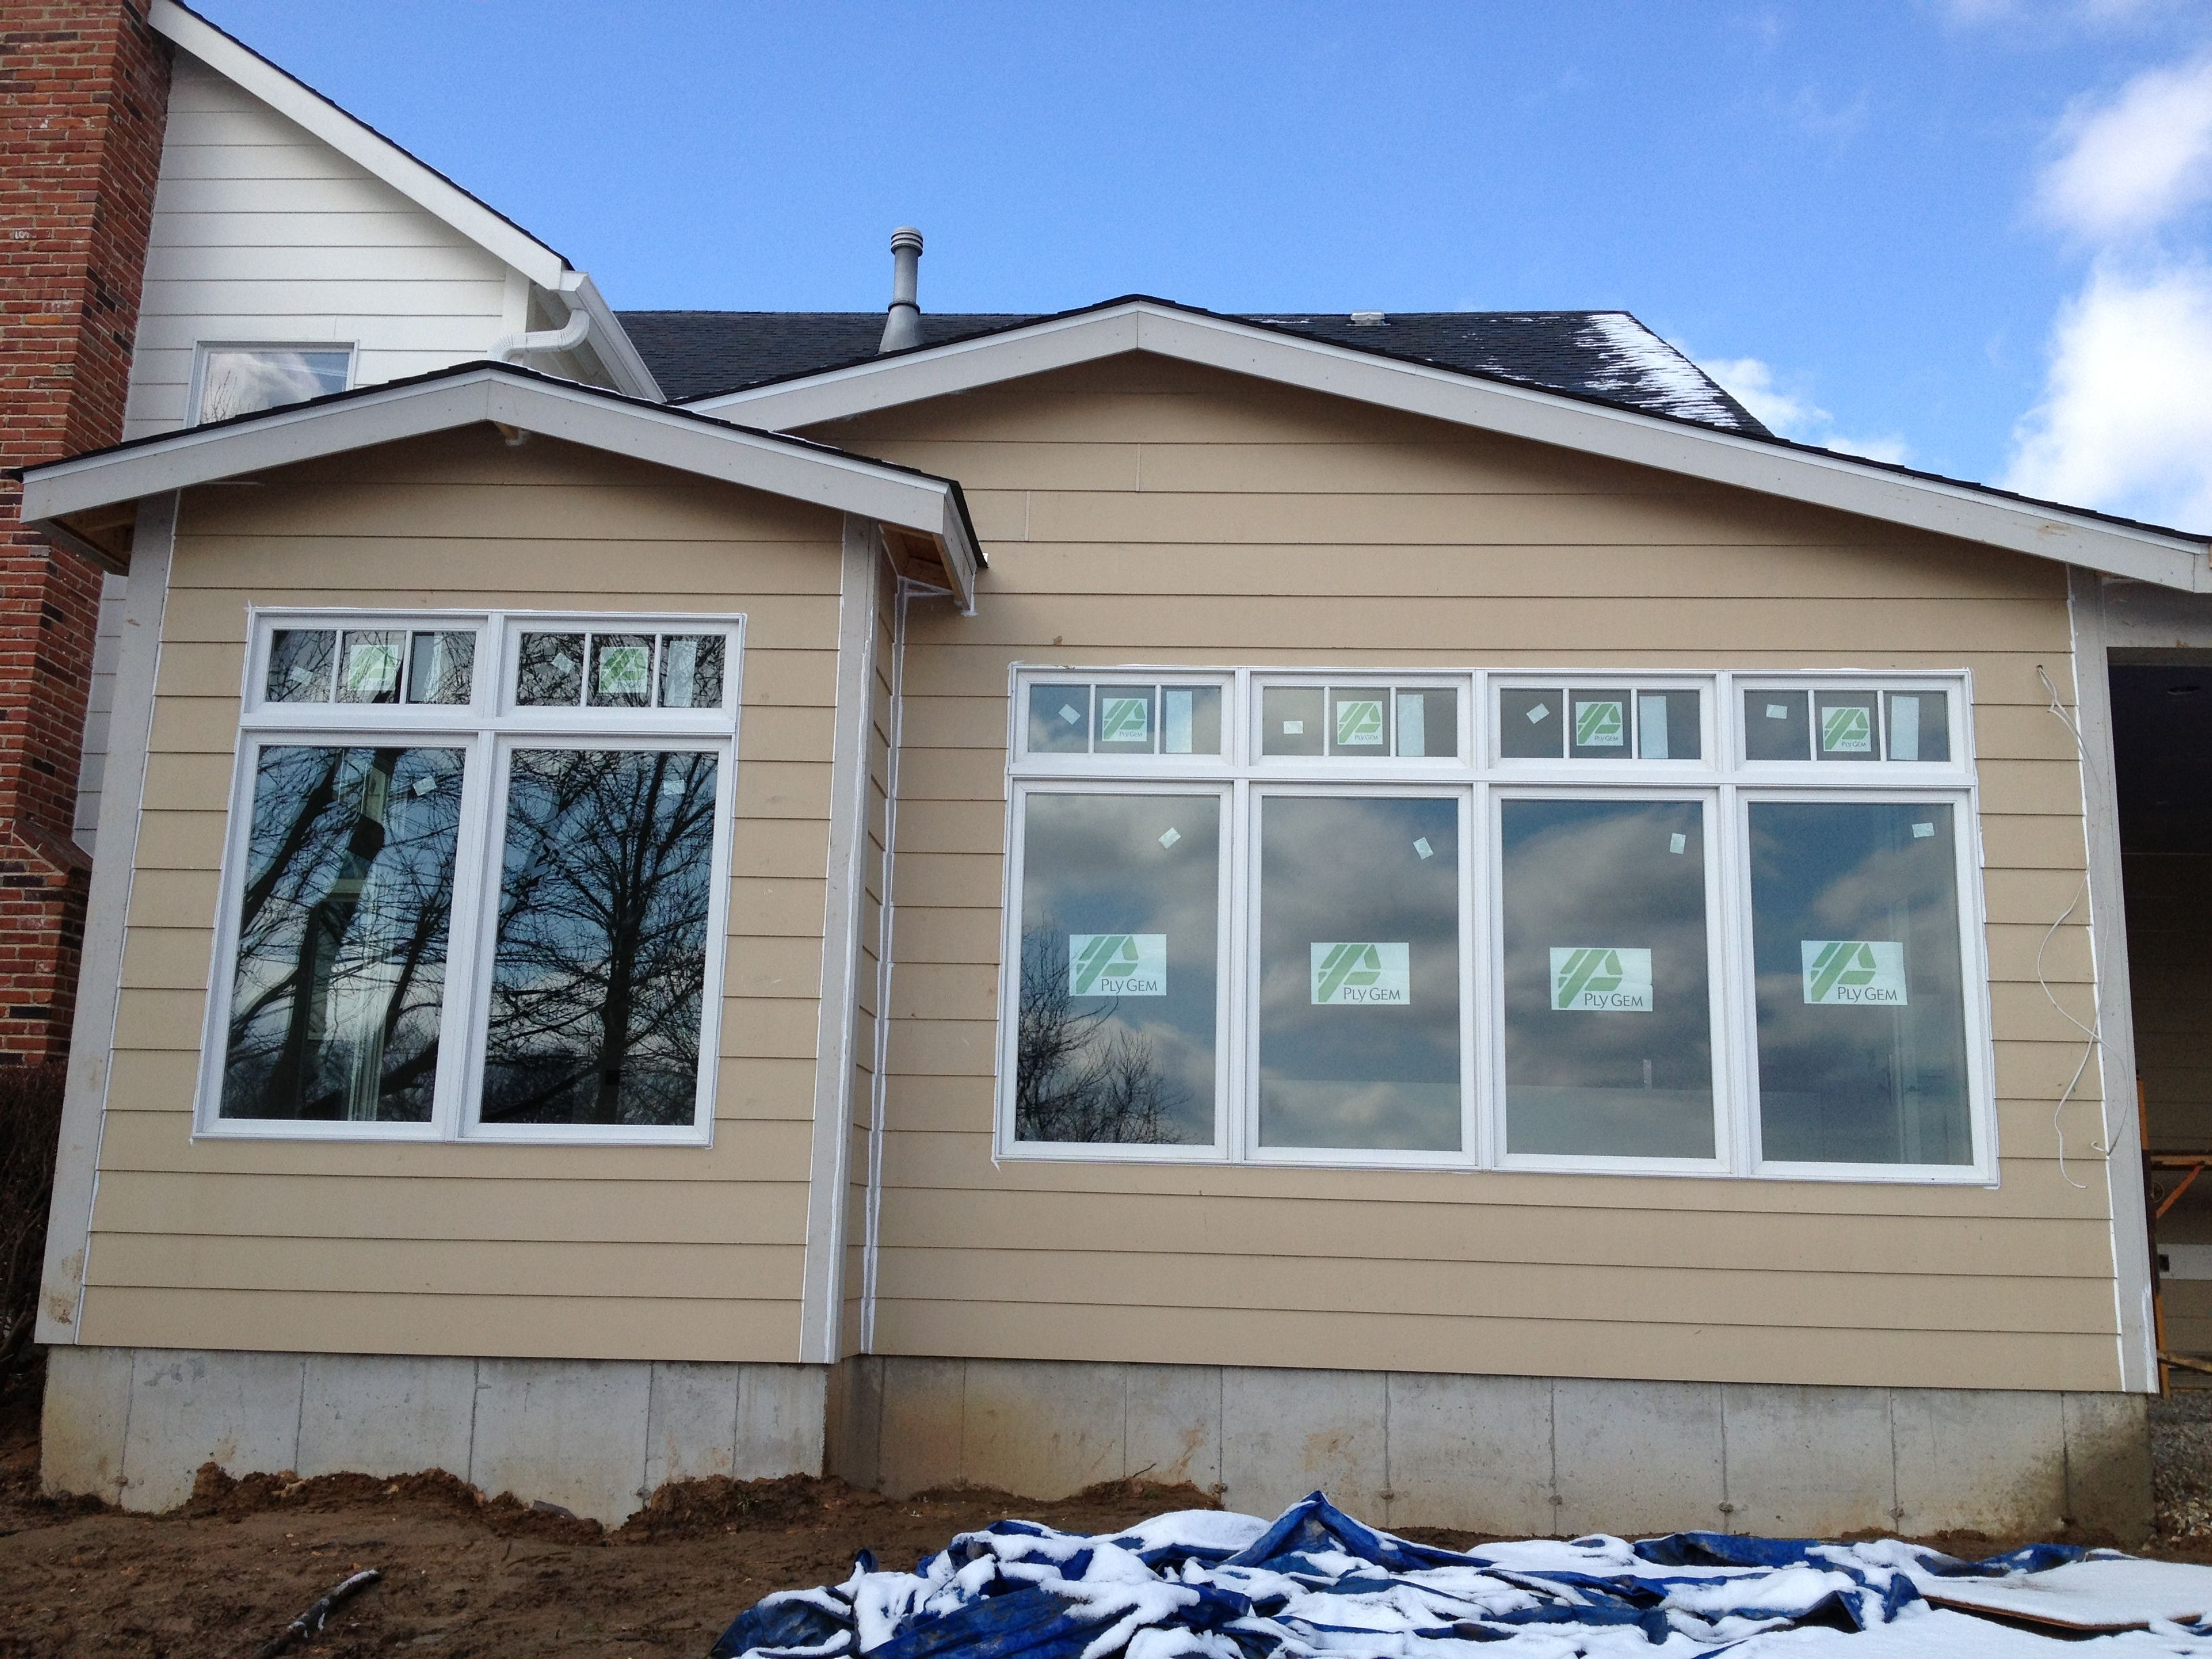 Ply Gem Mira wood clad quad and twin mulled windows with quad and twin transoms that have simulated divided lite grilles (SDLs).  Exterior color is White.